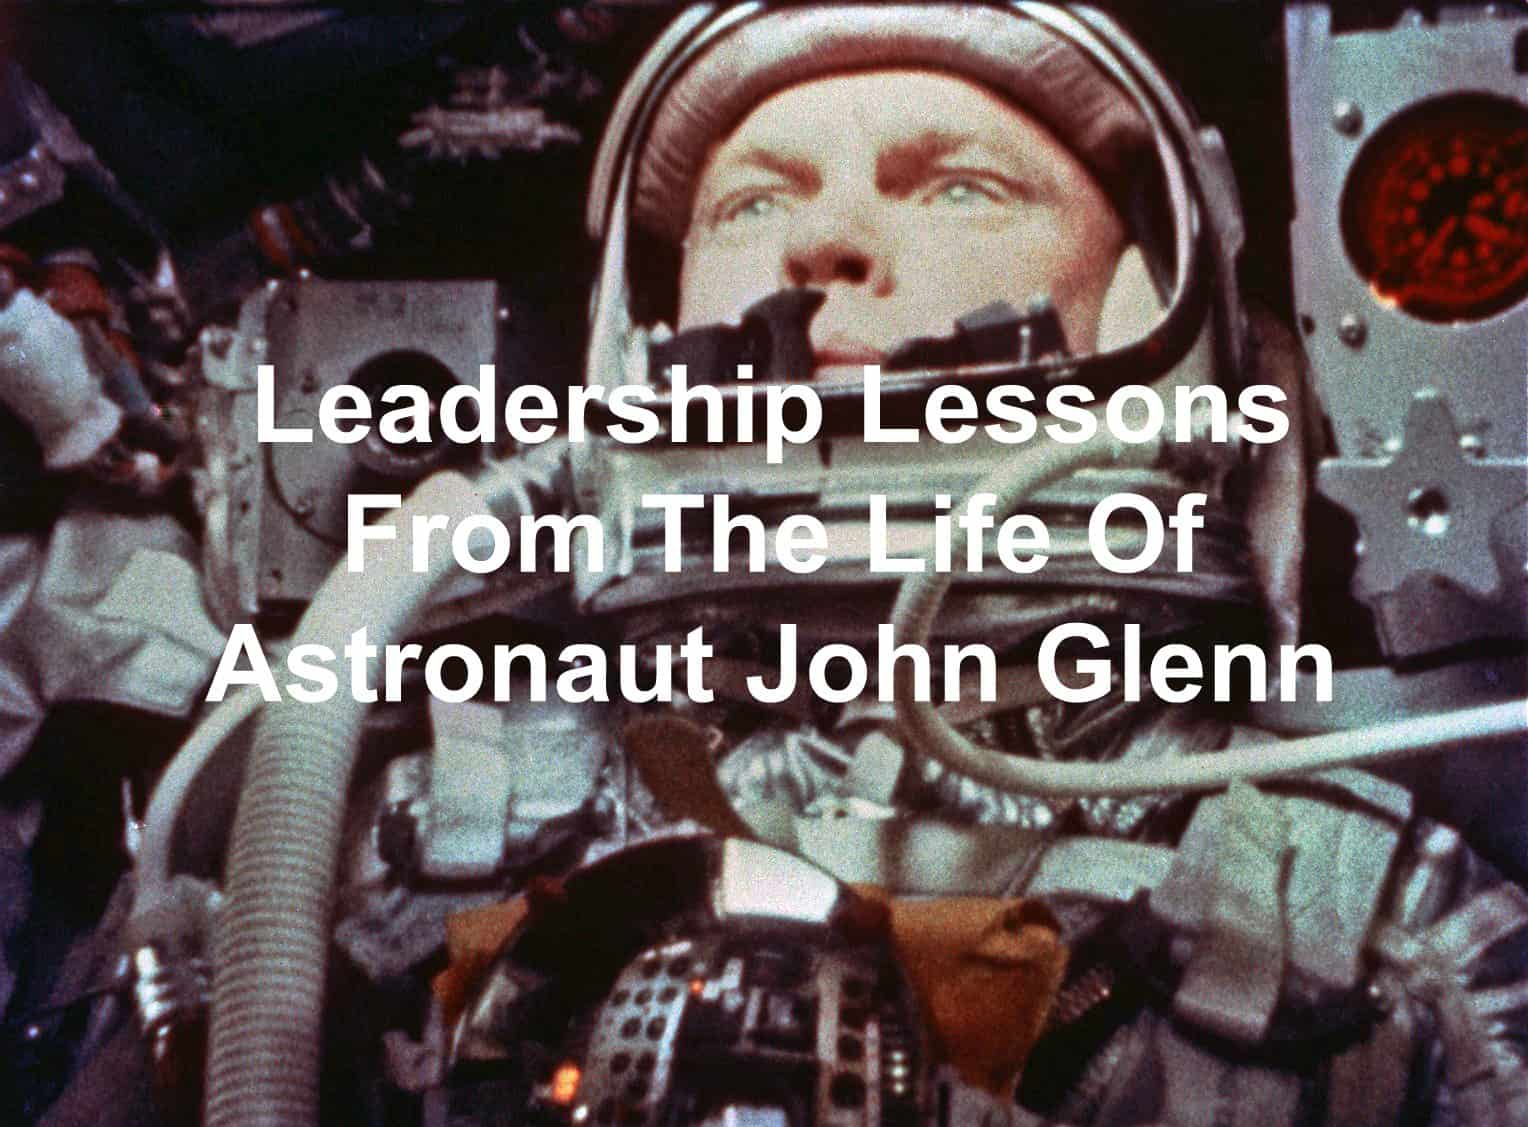 Leadership lessons and quotes from John Glenn